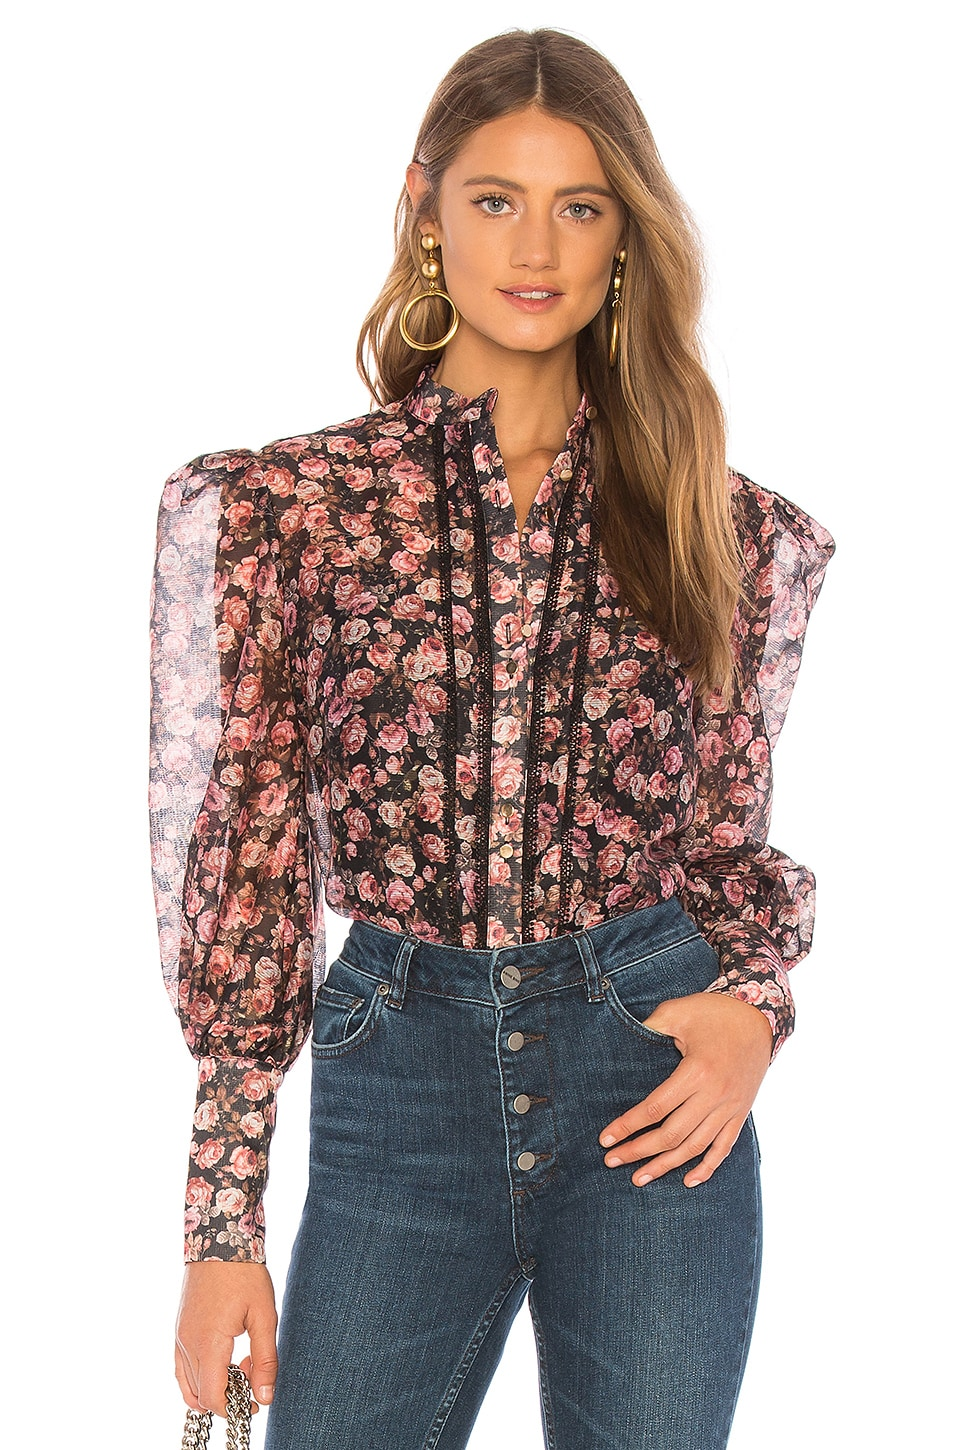 keepsake One Love Top en Black Rose Floral